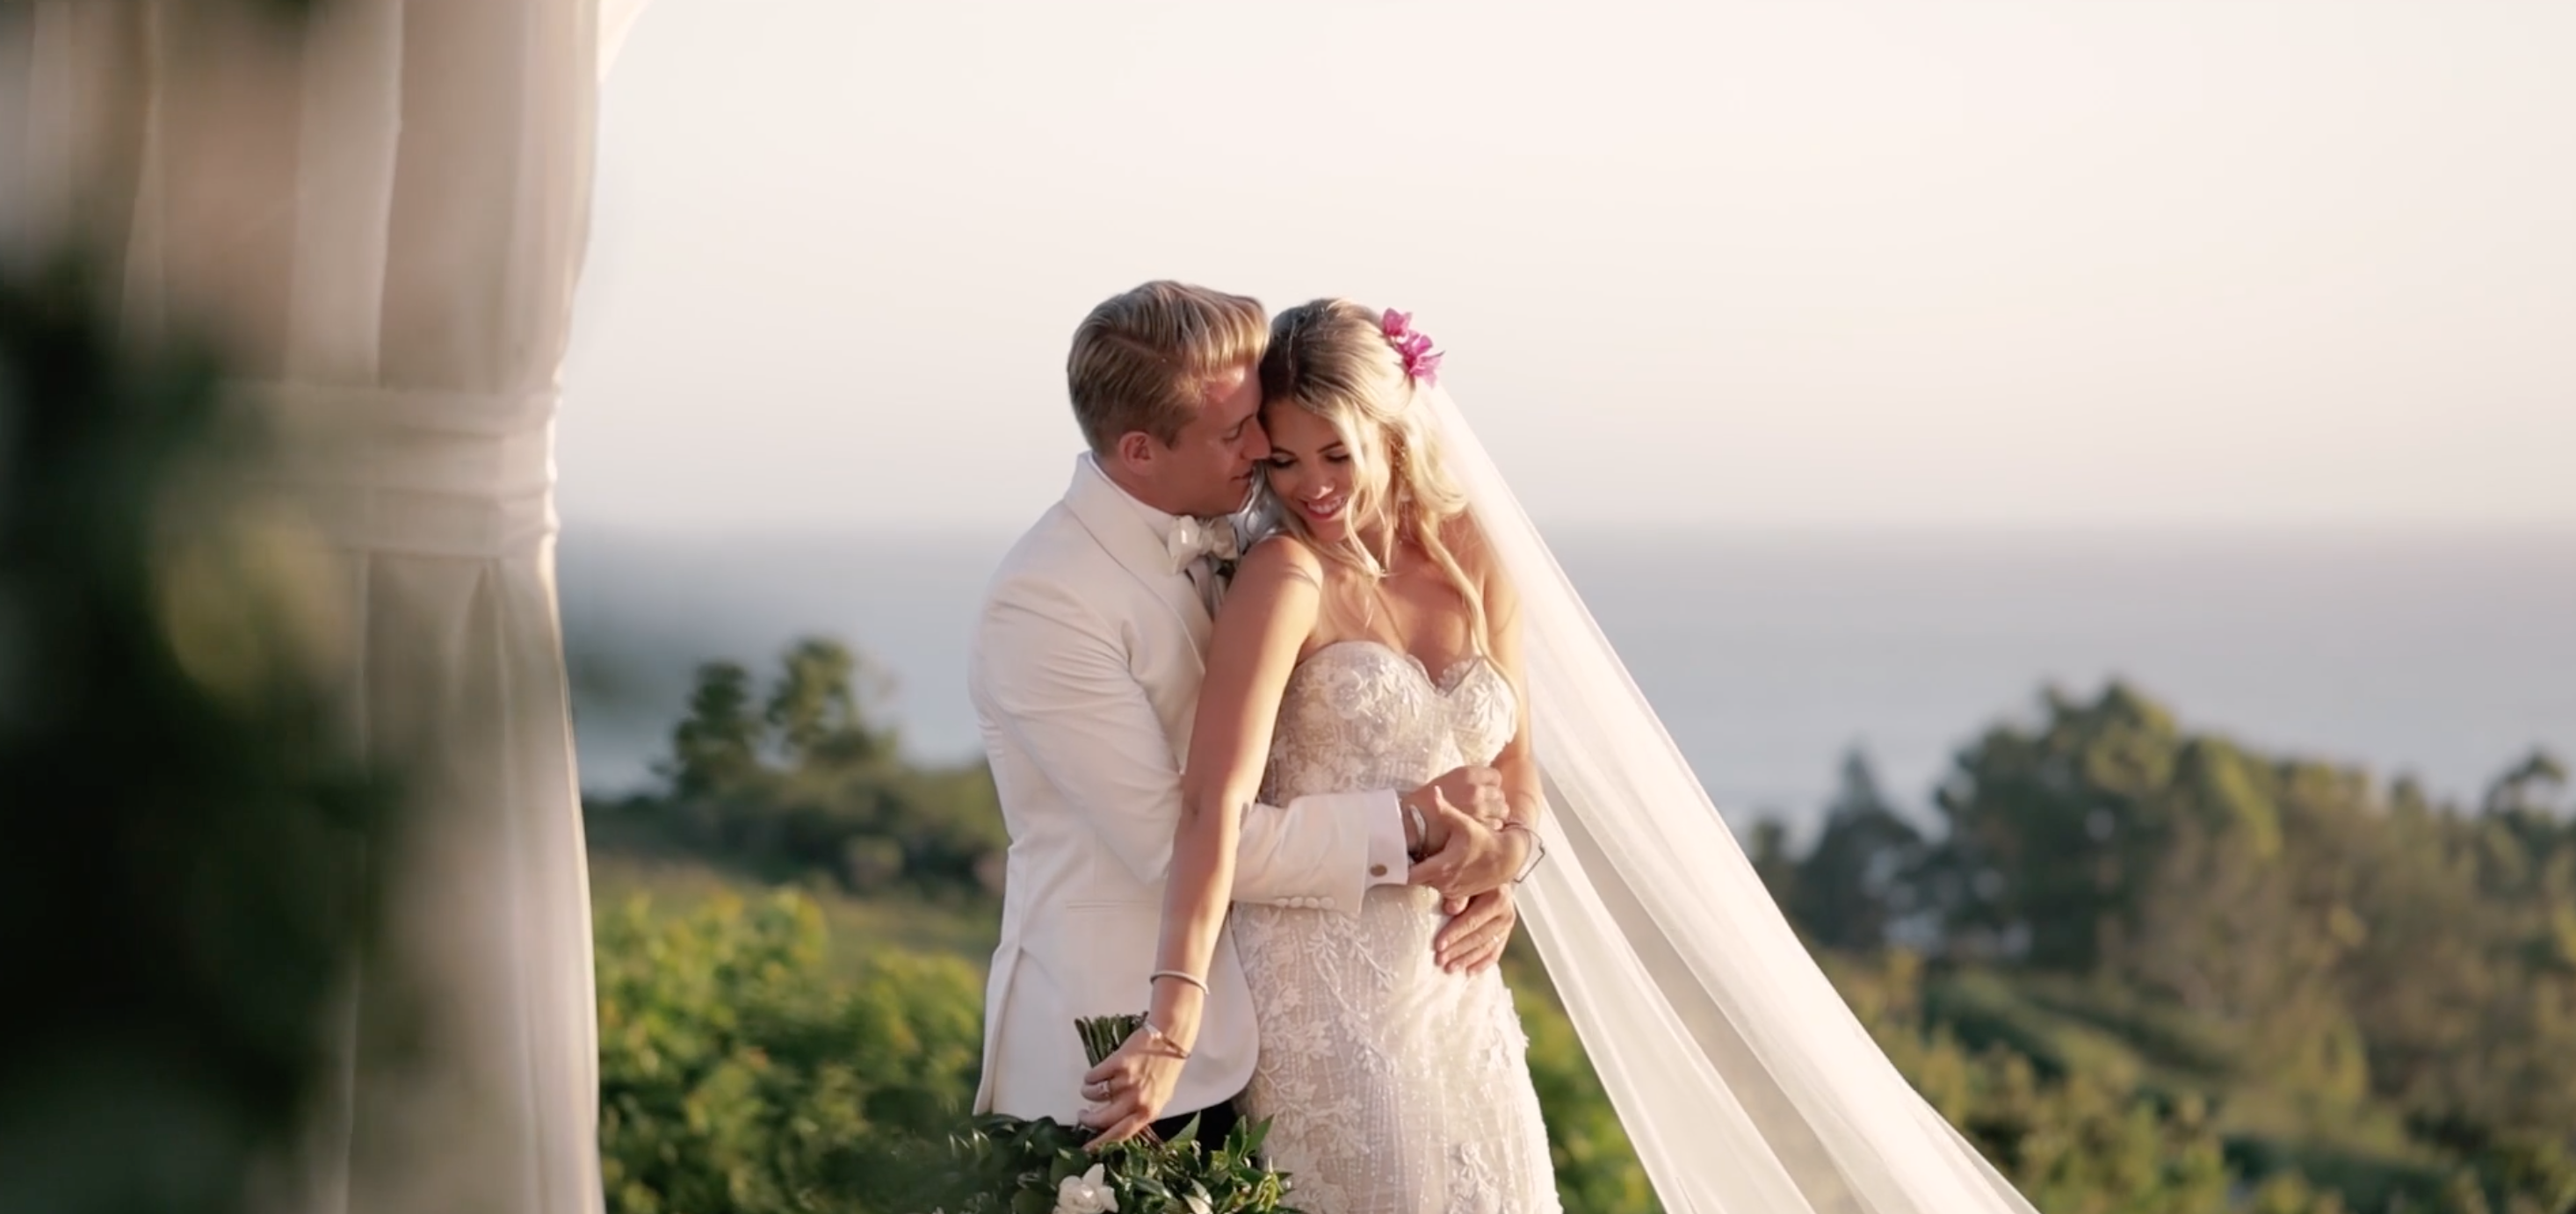 JOSH + BRYNNE | Newport Beach, California | The Resort at Pelican Hill